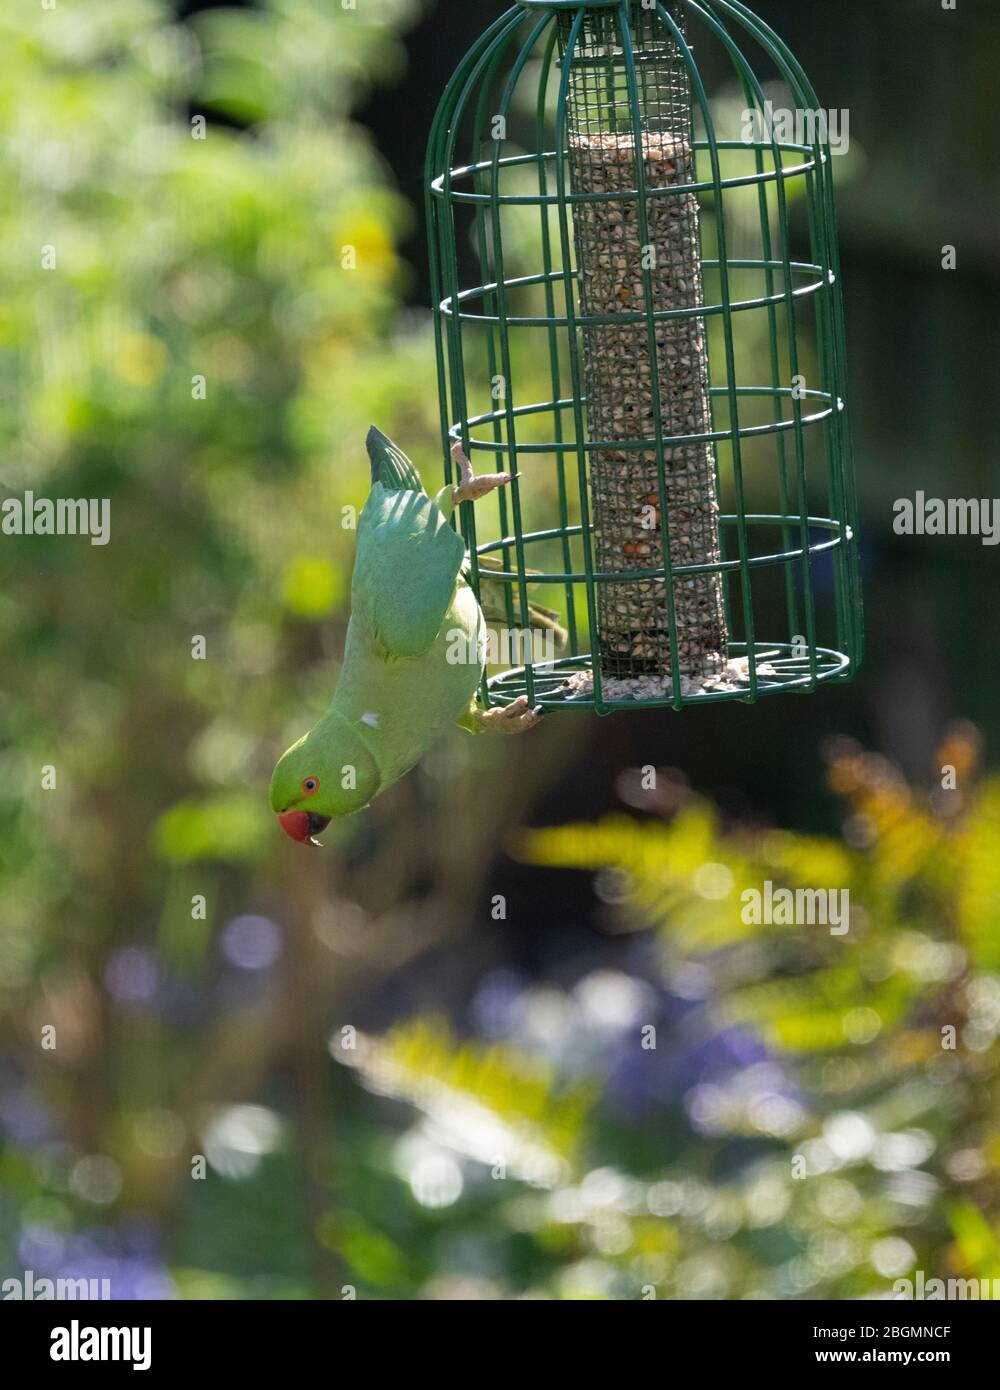 Rosy Ringed Parakeet balancing on a bird feeder against a garden background, London UK Stock Photo